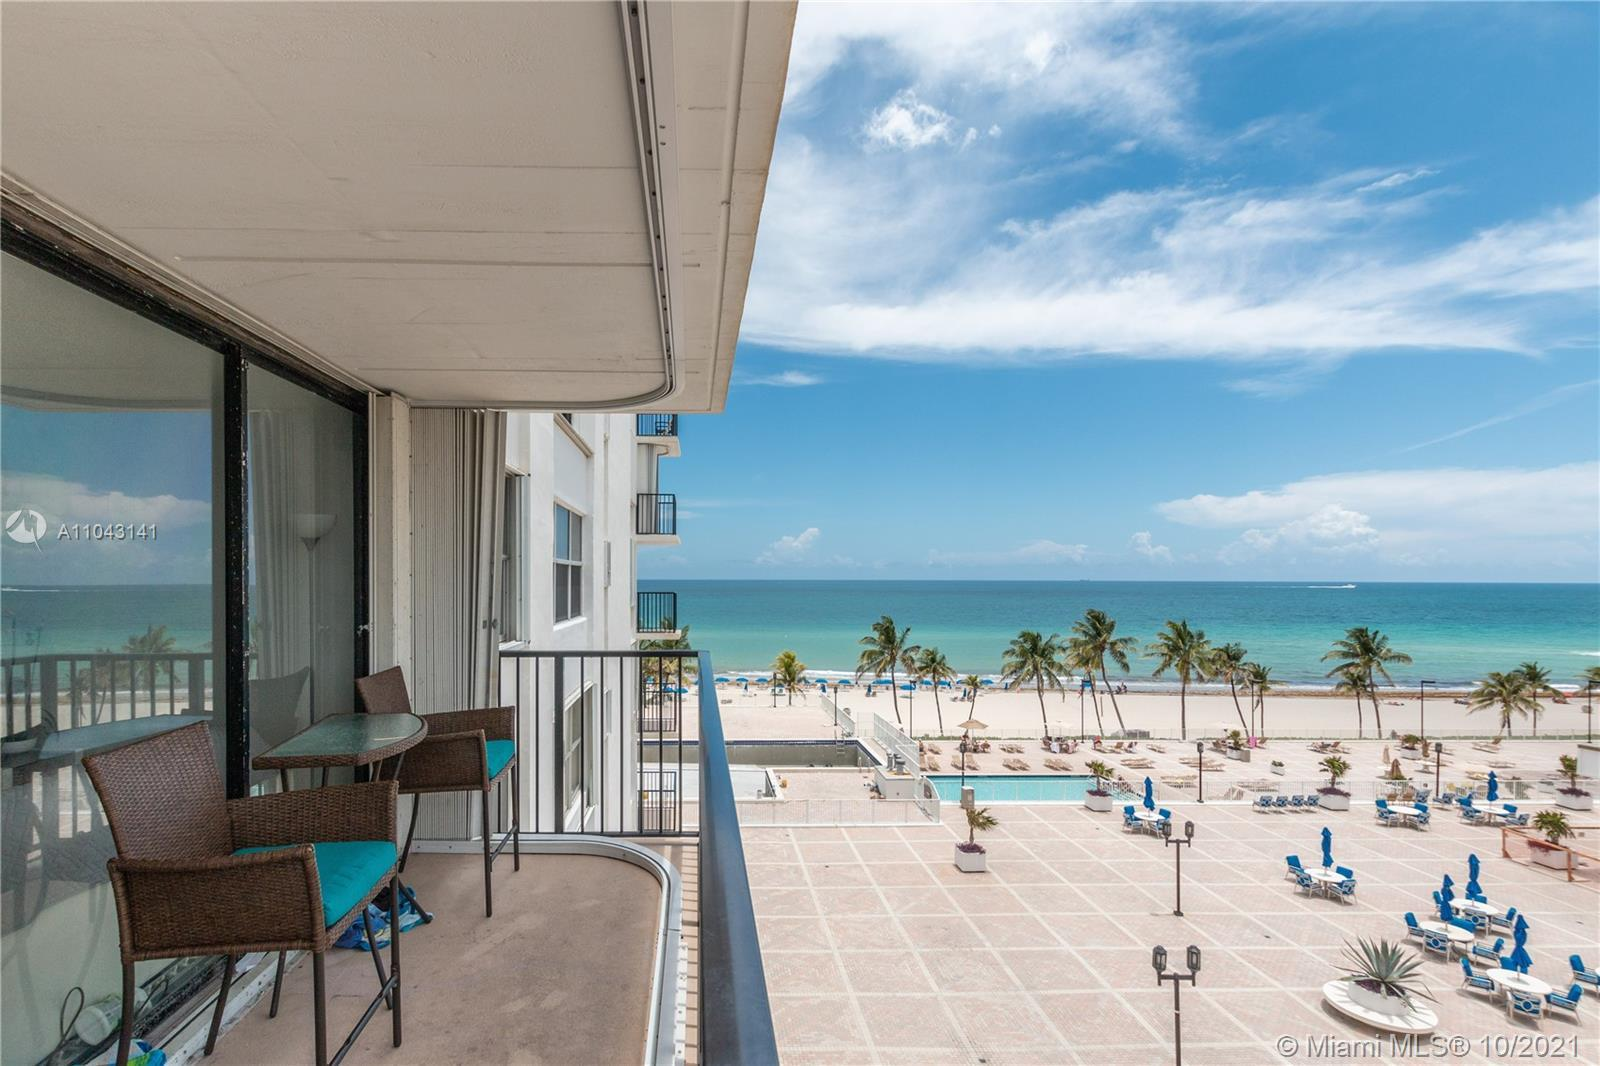 Great Value! Don't miss this opportunity to own a 2/2 in an ocean front complex in the heart of Holl